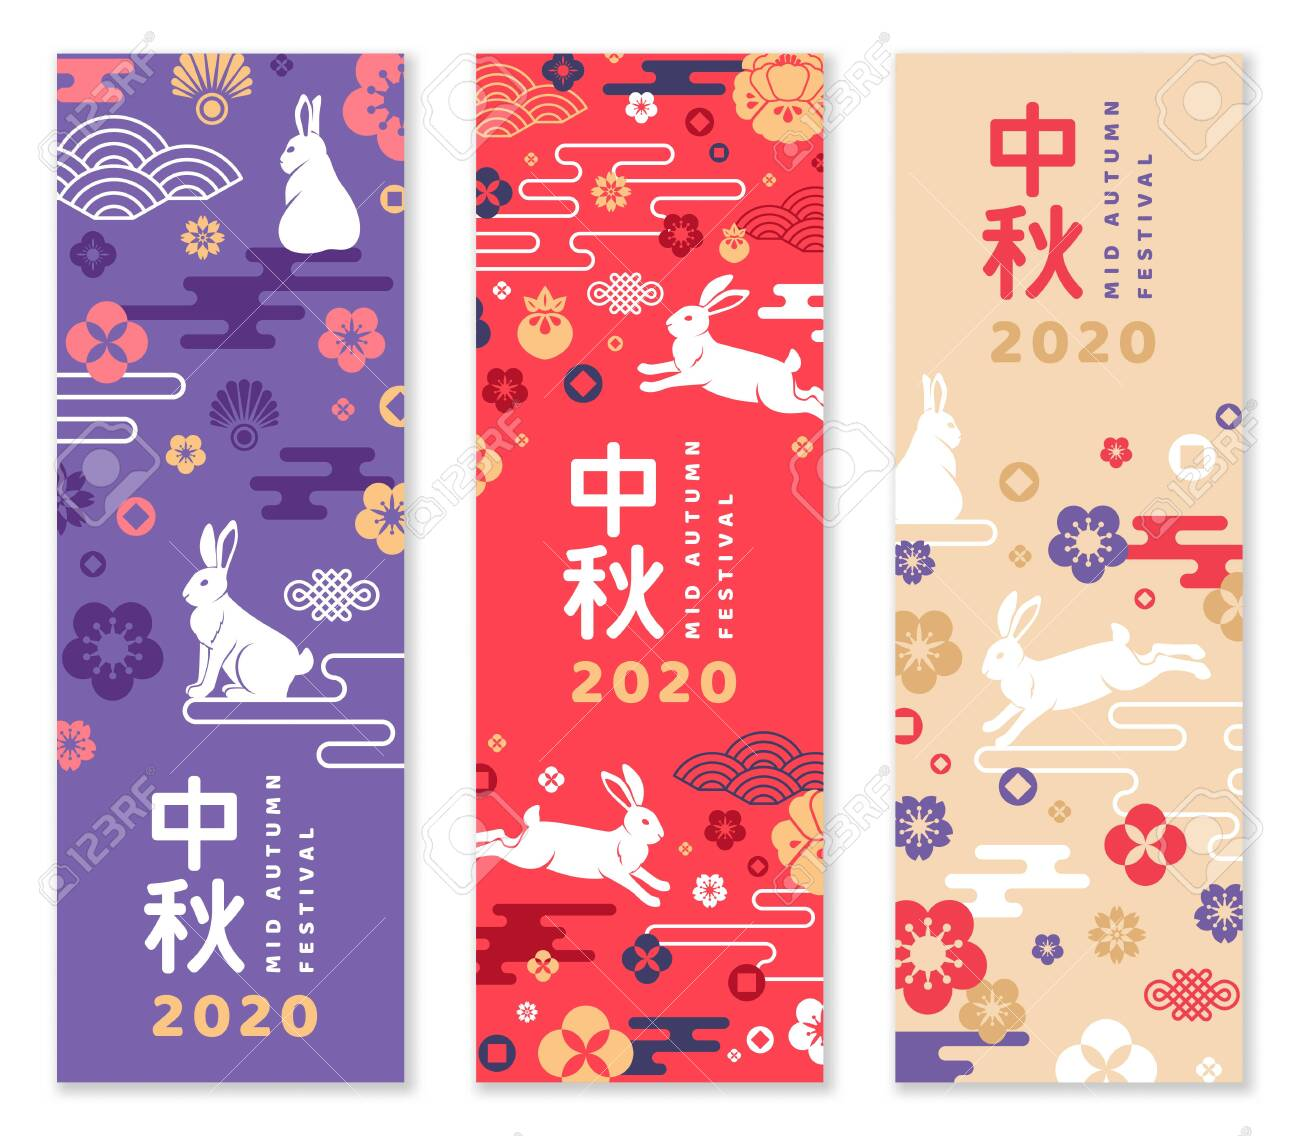 Mid Autumn Festival 2020.Mid Autumn Festival Web Posters Set Traditional Eastern Cultural